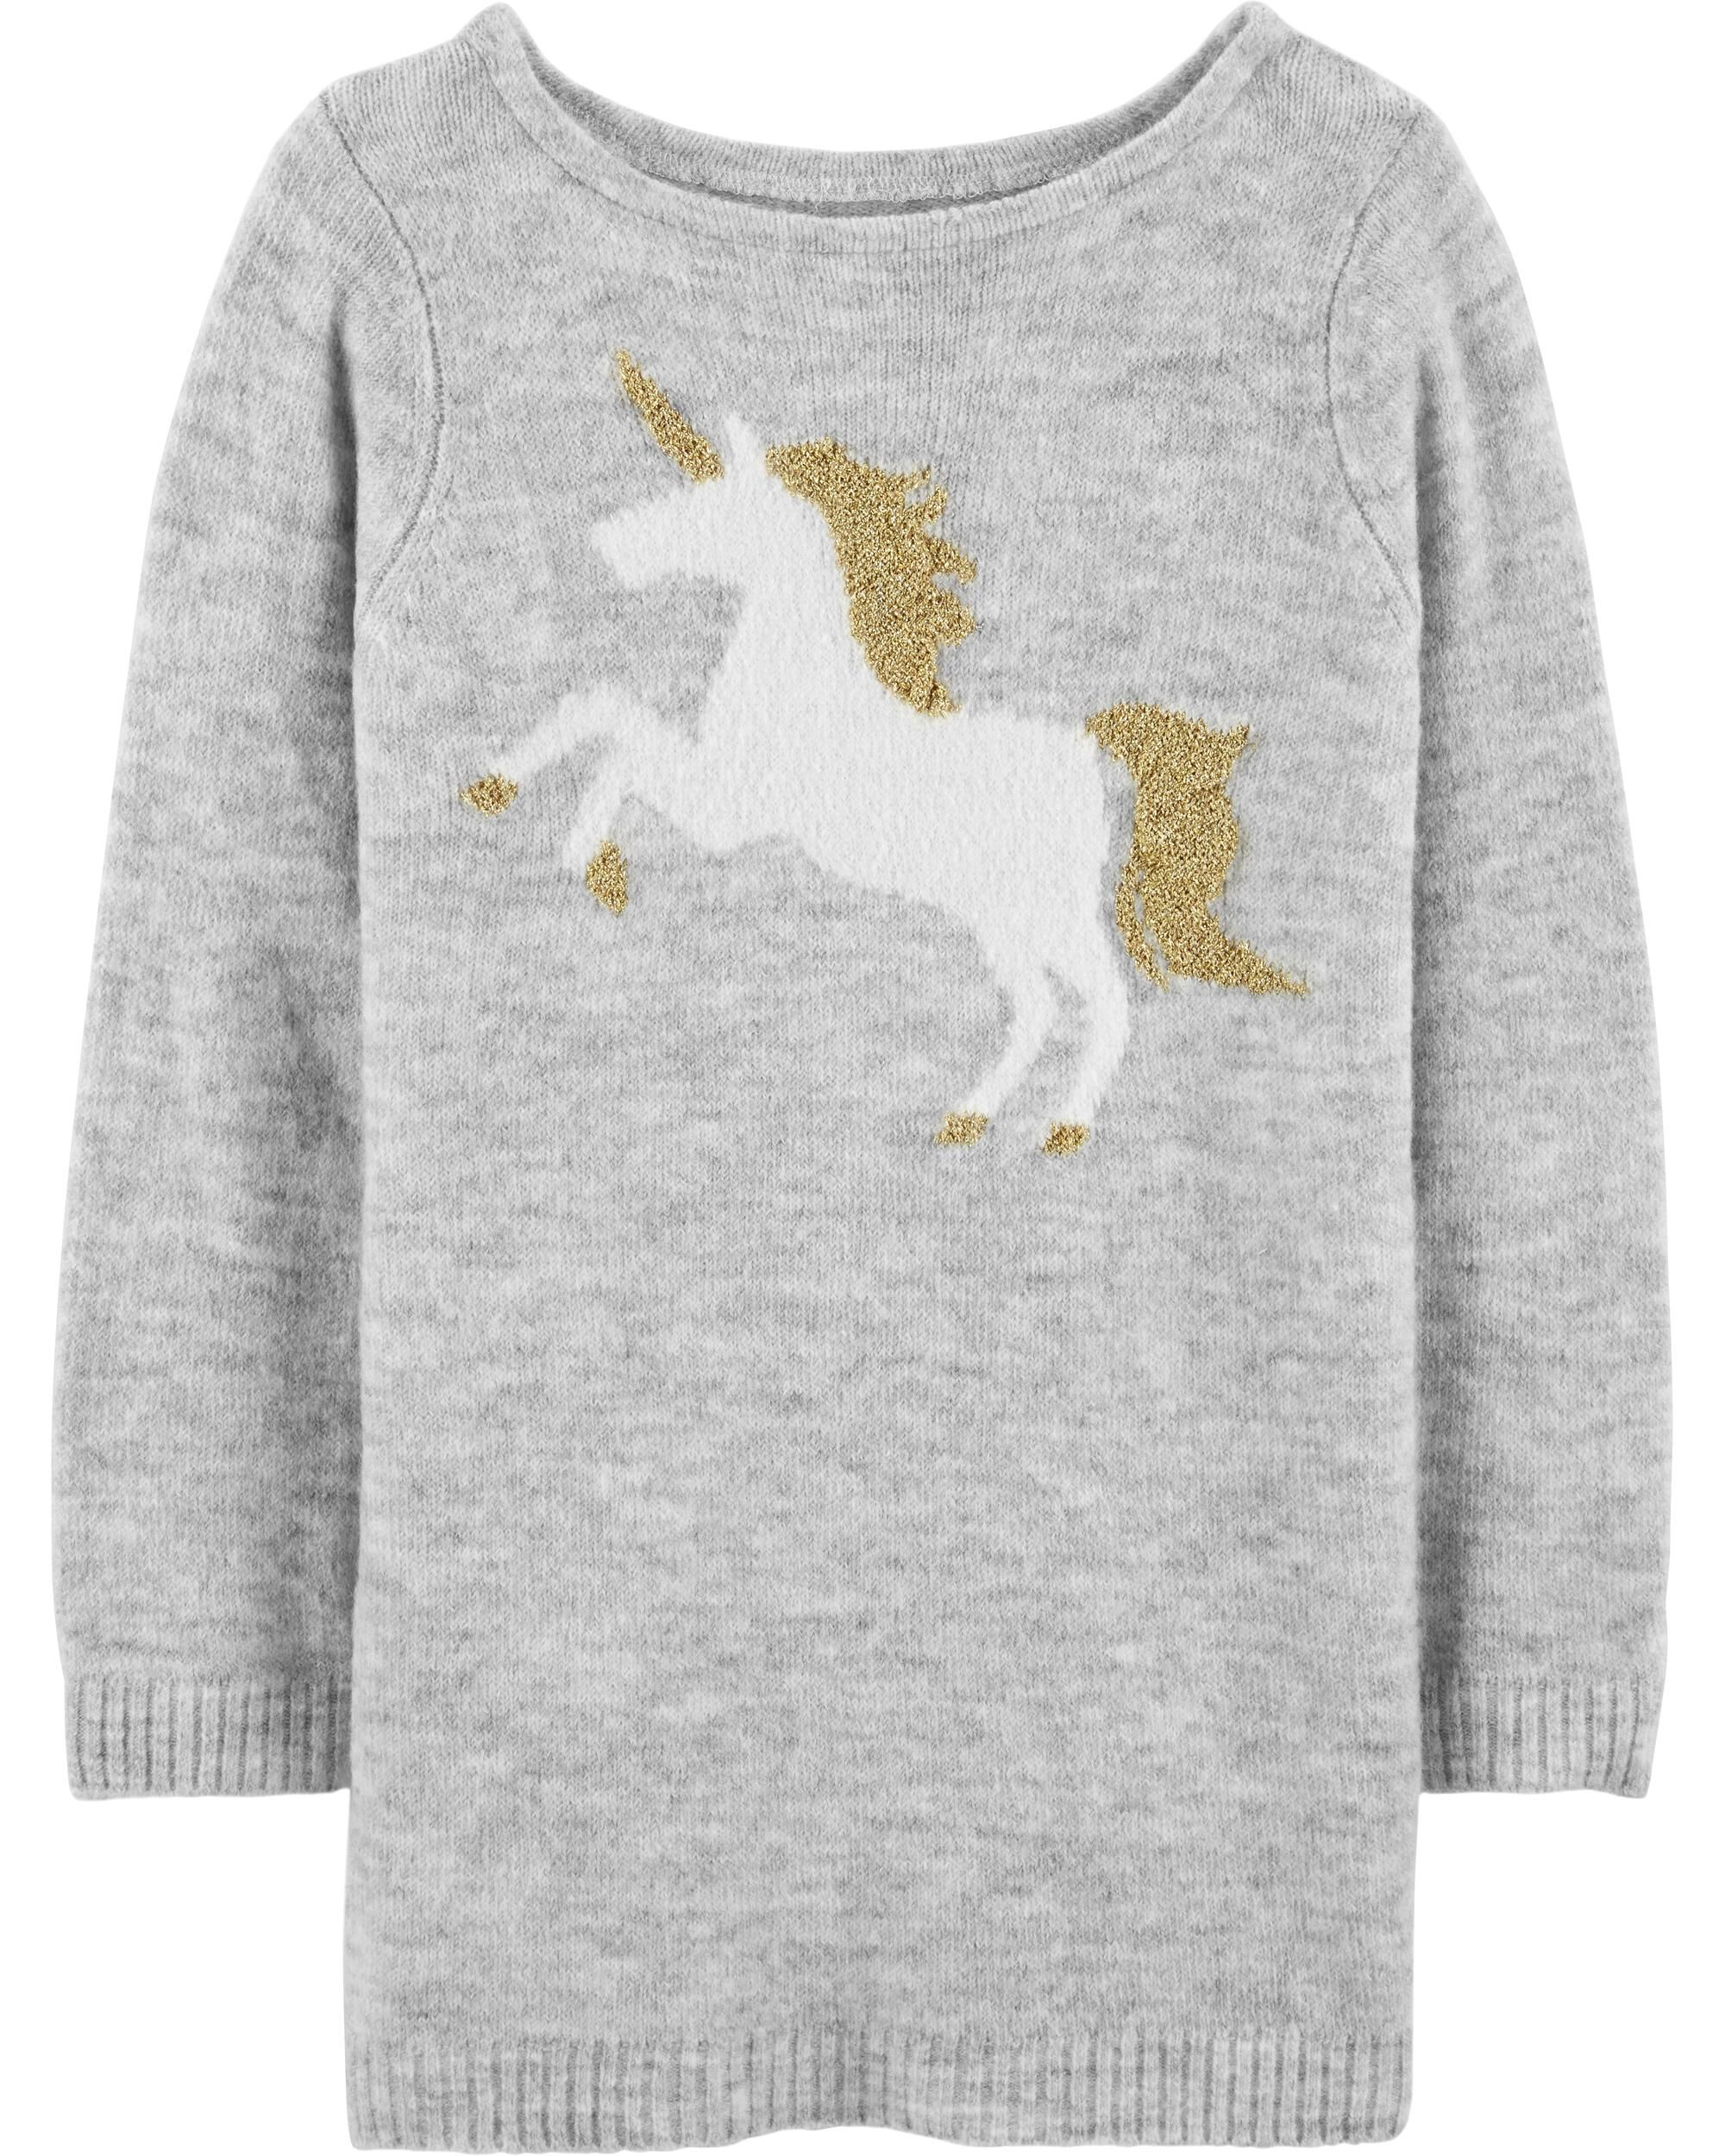 e4ffb8b3a39 Glitter Unicorn Sweater. Loading zoom